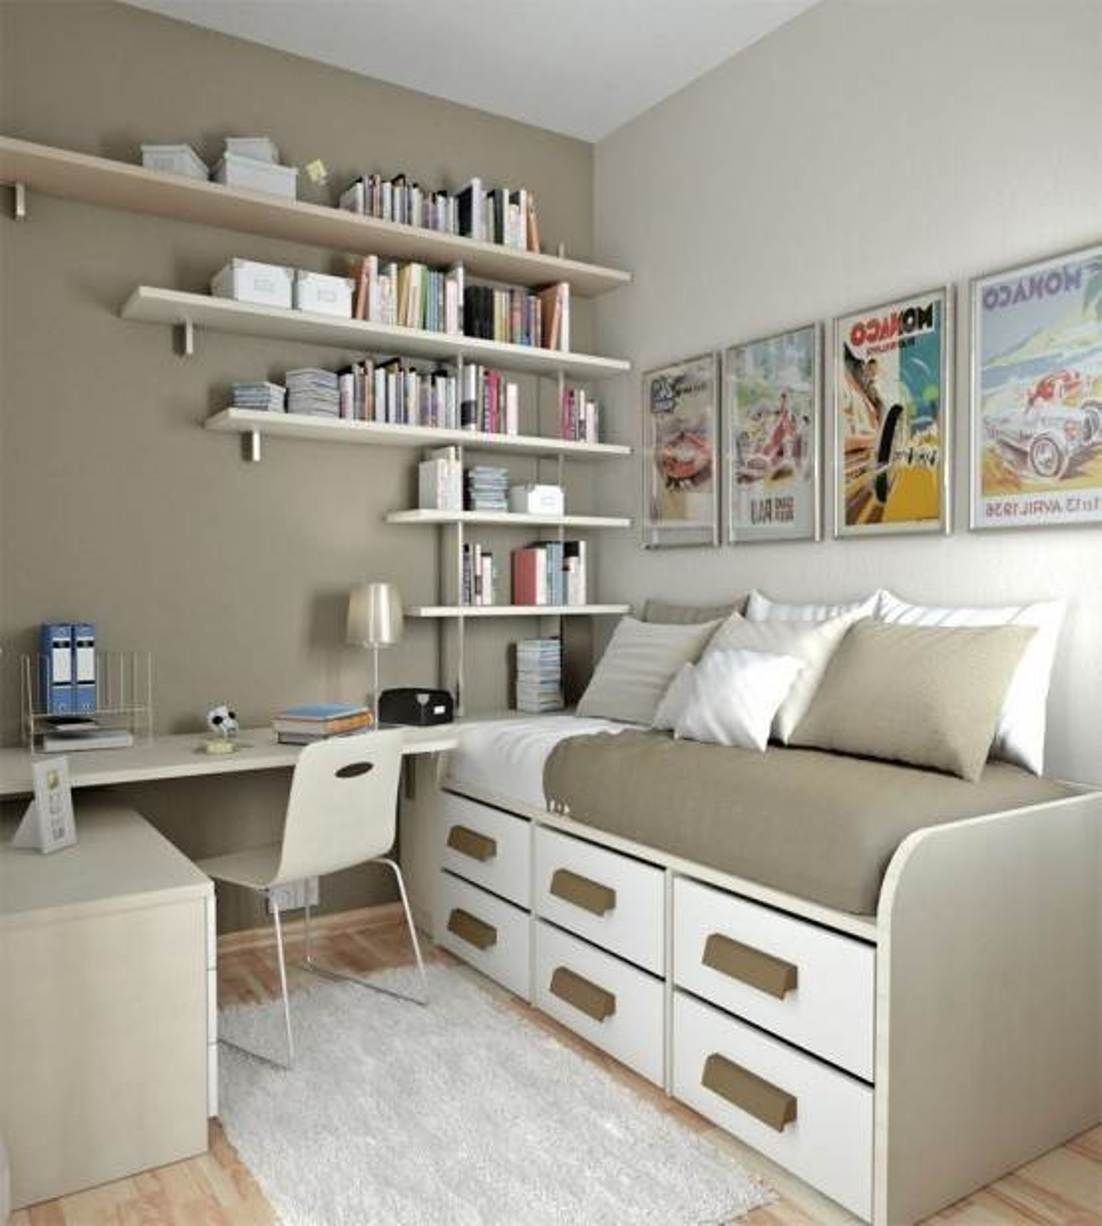 Many of us complain how we dont have enough space in our homes but did you know there are fantastic and clever space saving design ideas you can use in